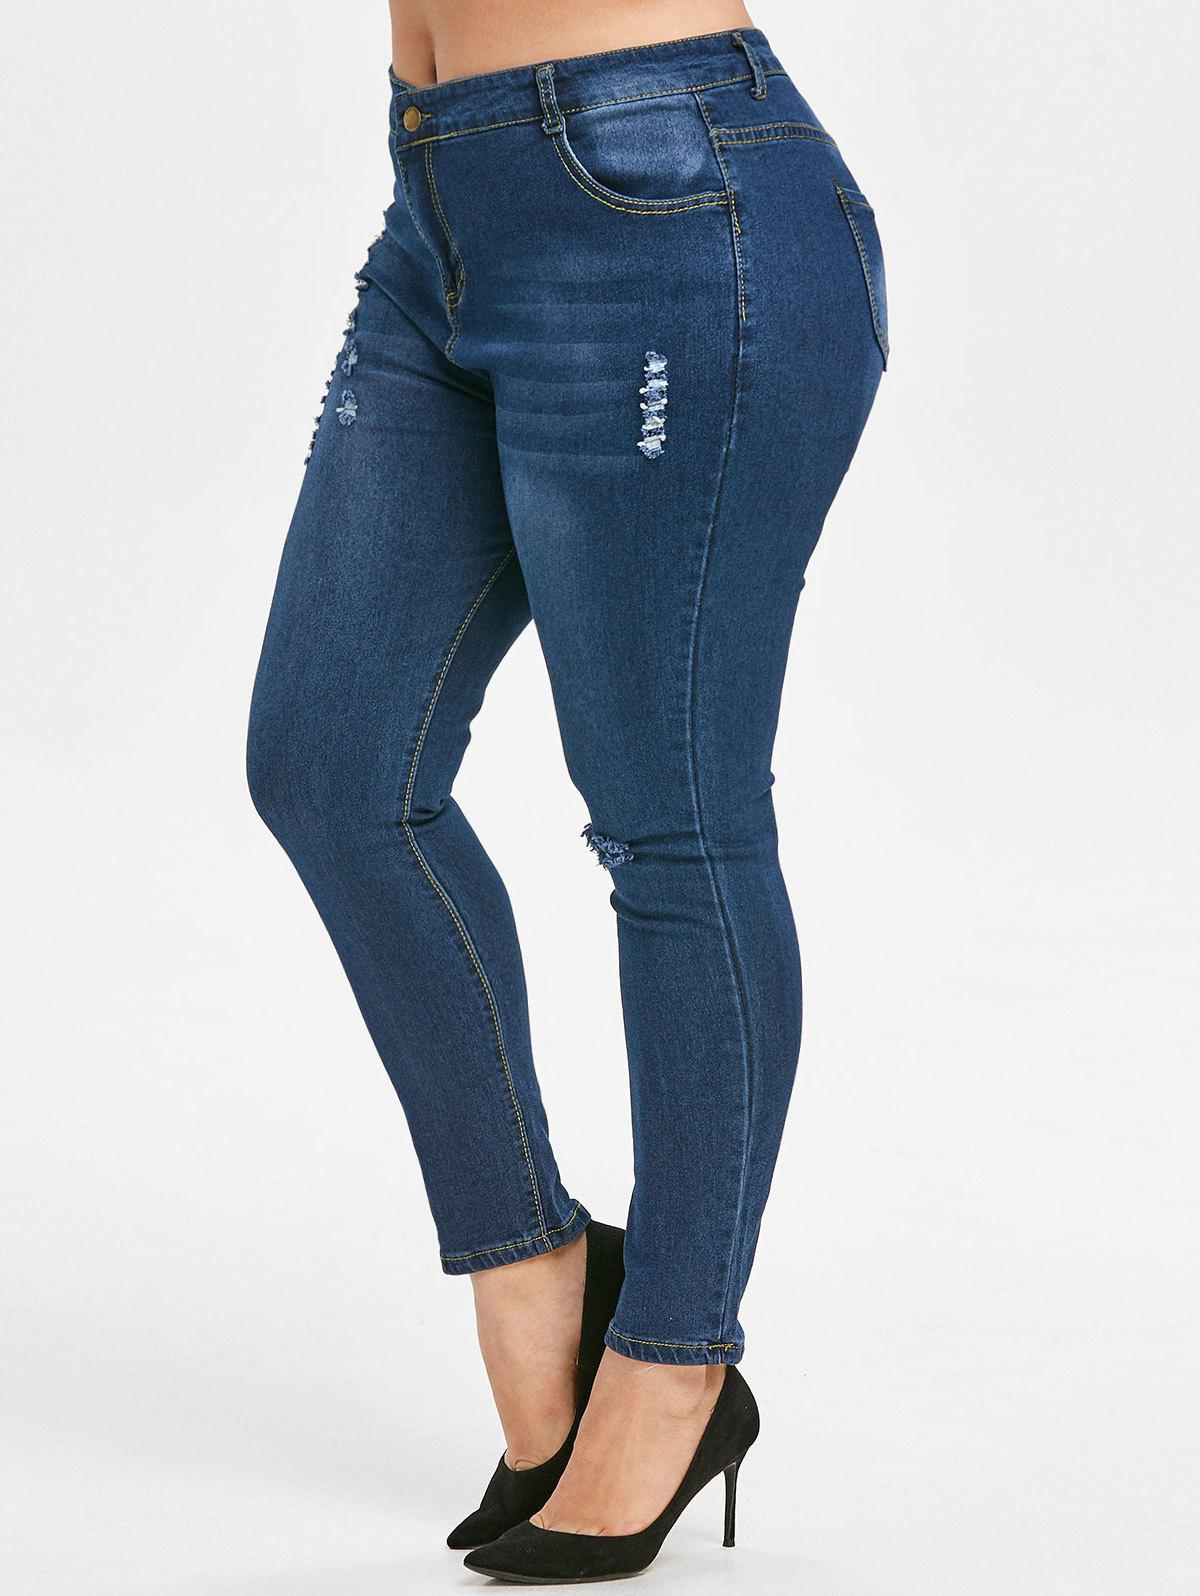 Dark Wash Ripped Taille Plus Skinny Jeans - Bleu 3X